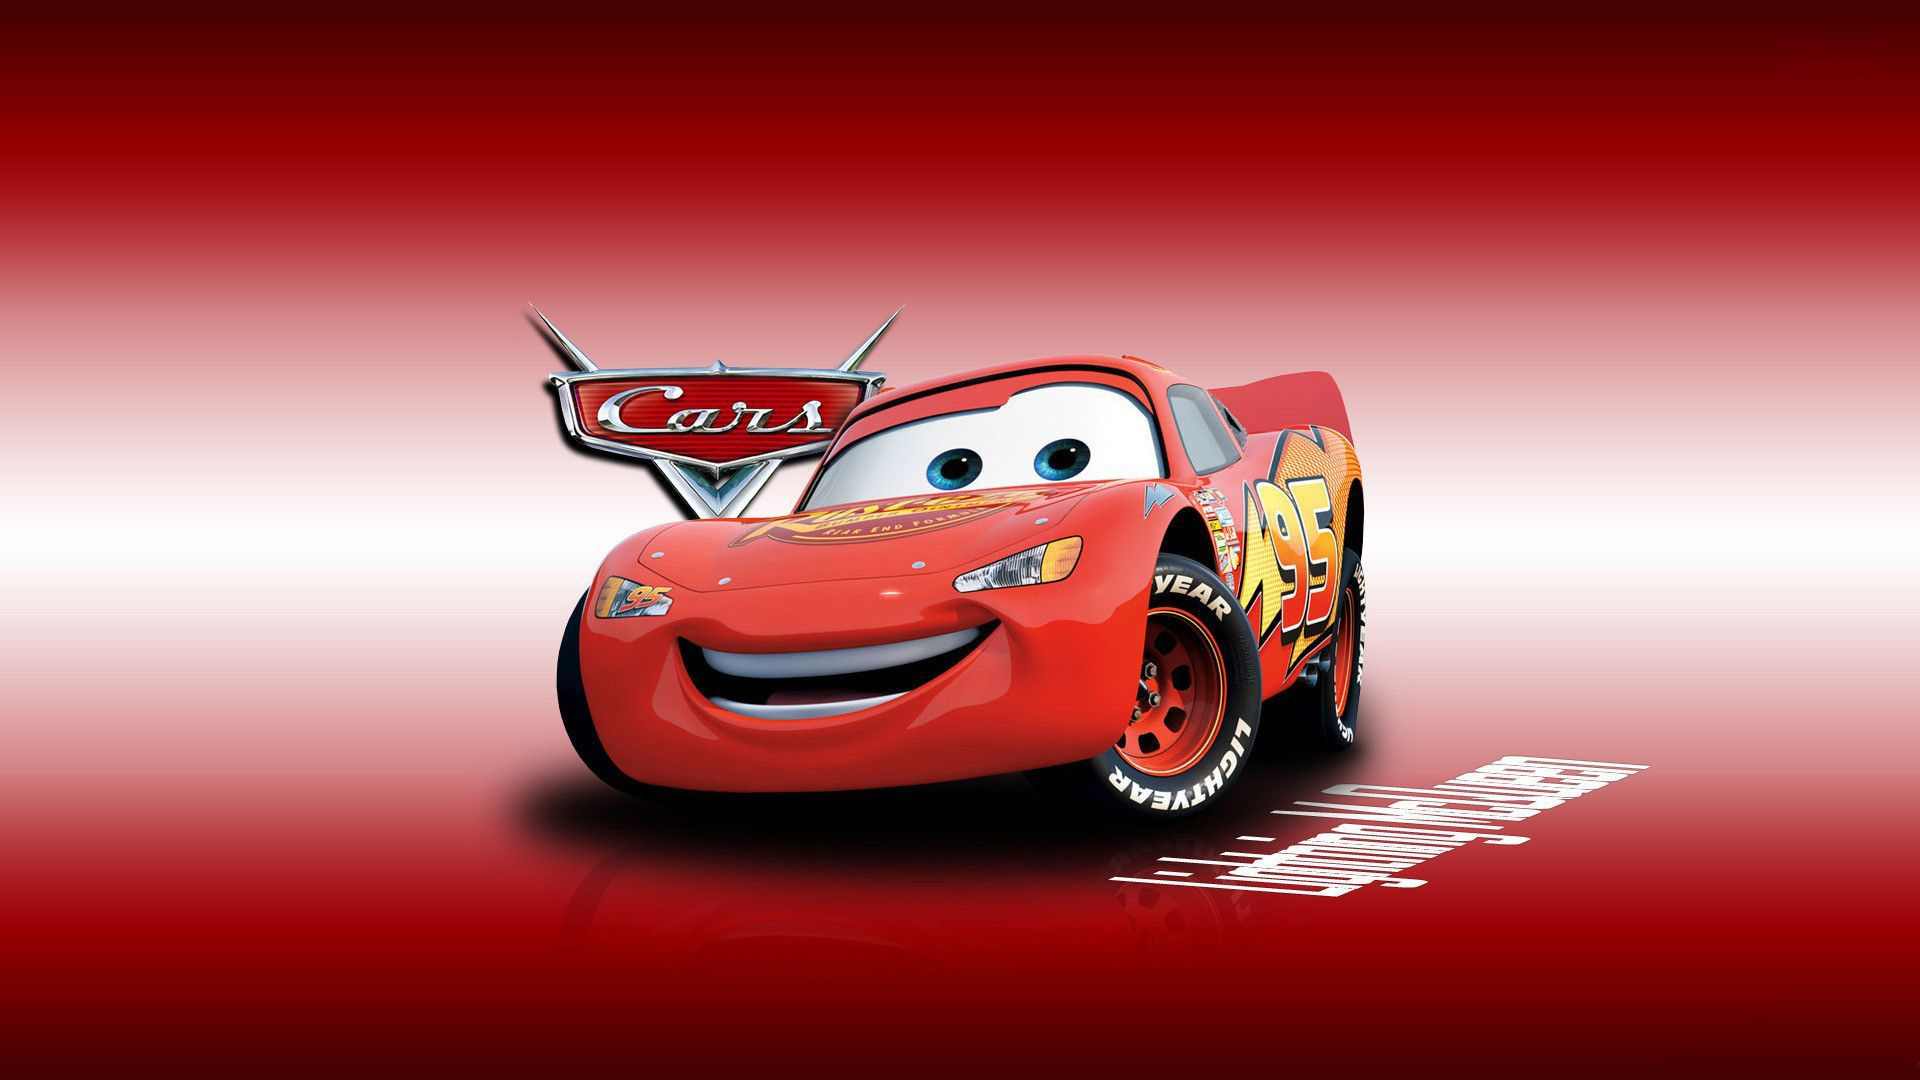 Disney Cars Backgrounds. - Disney Cars PNG HD Free